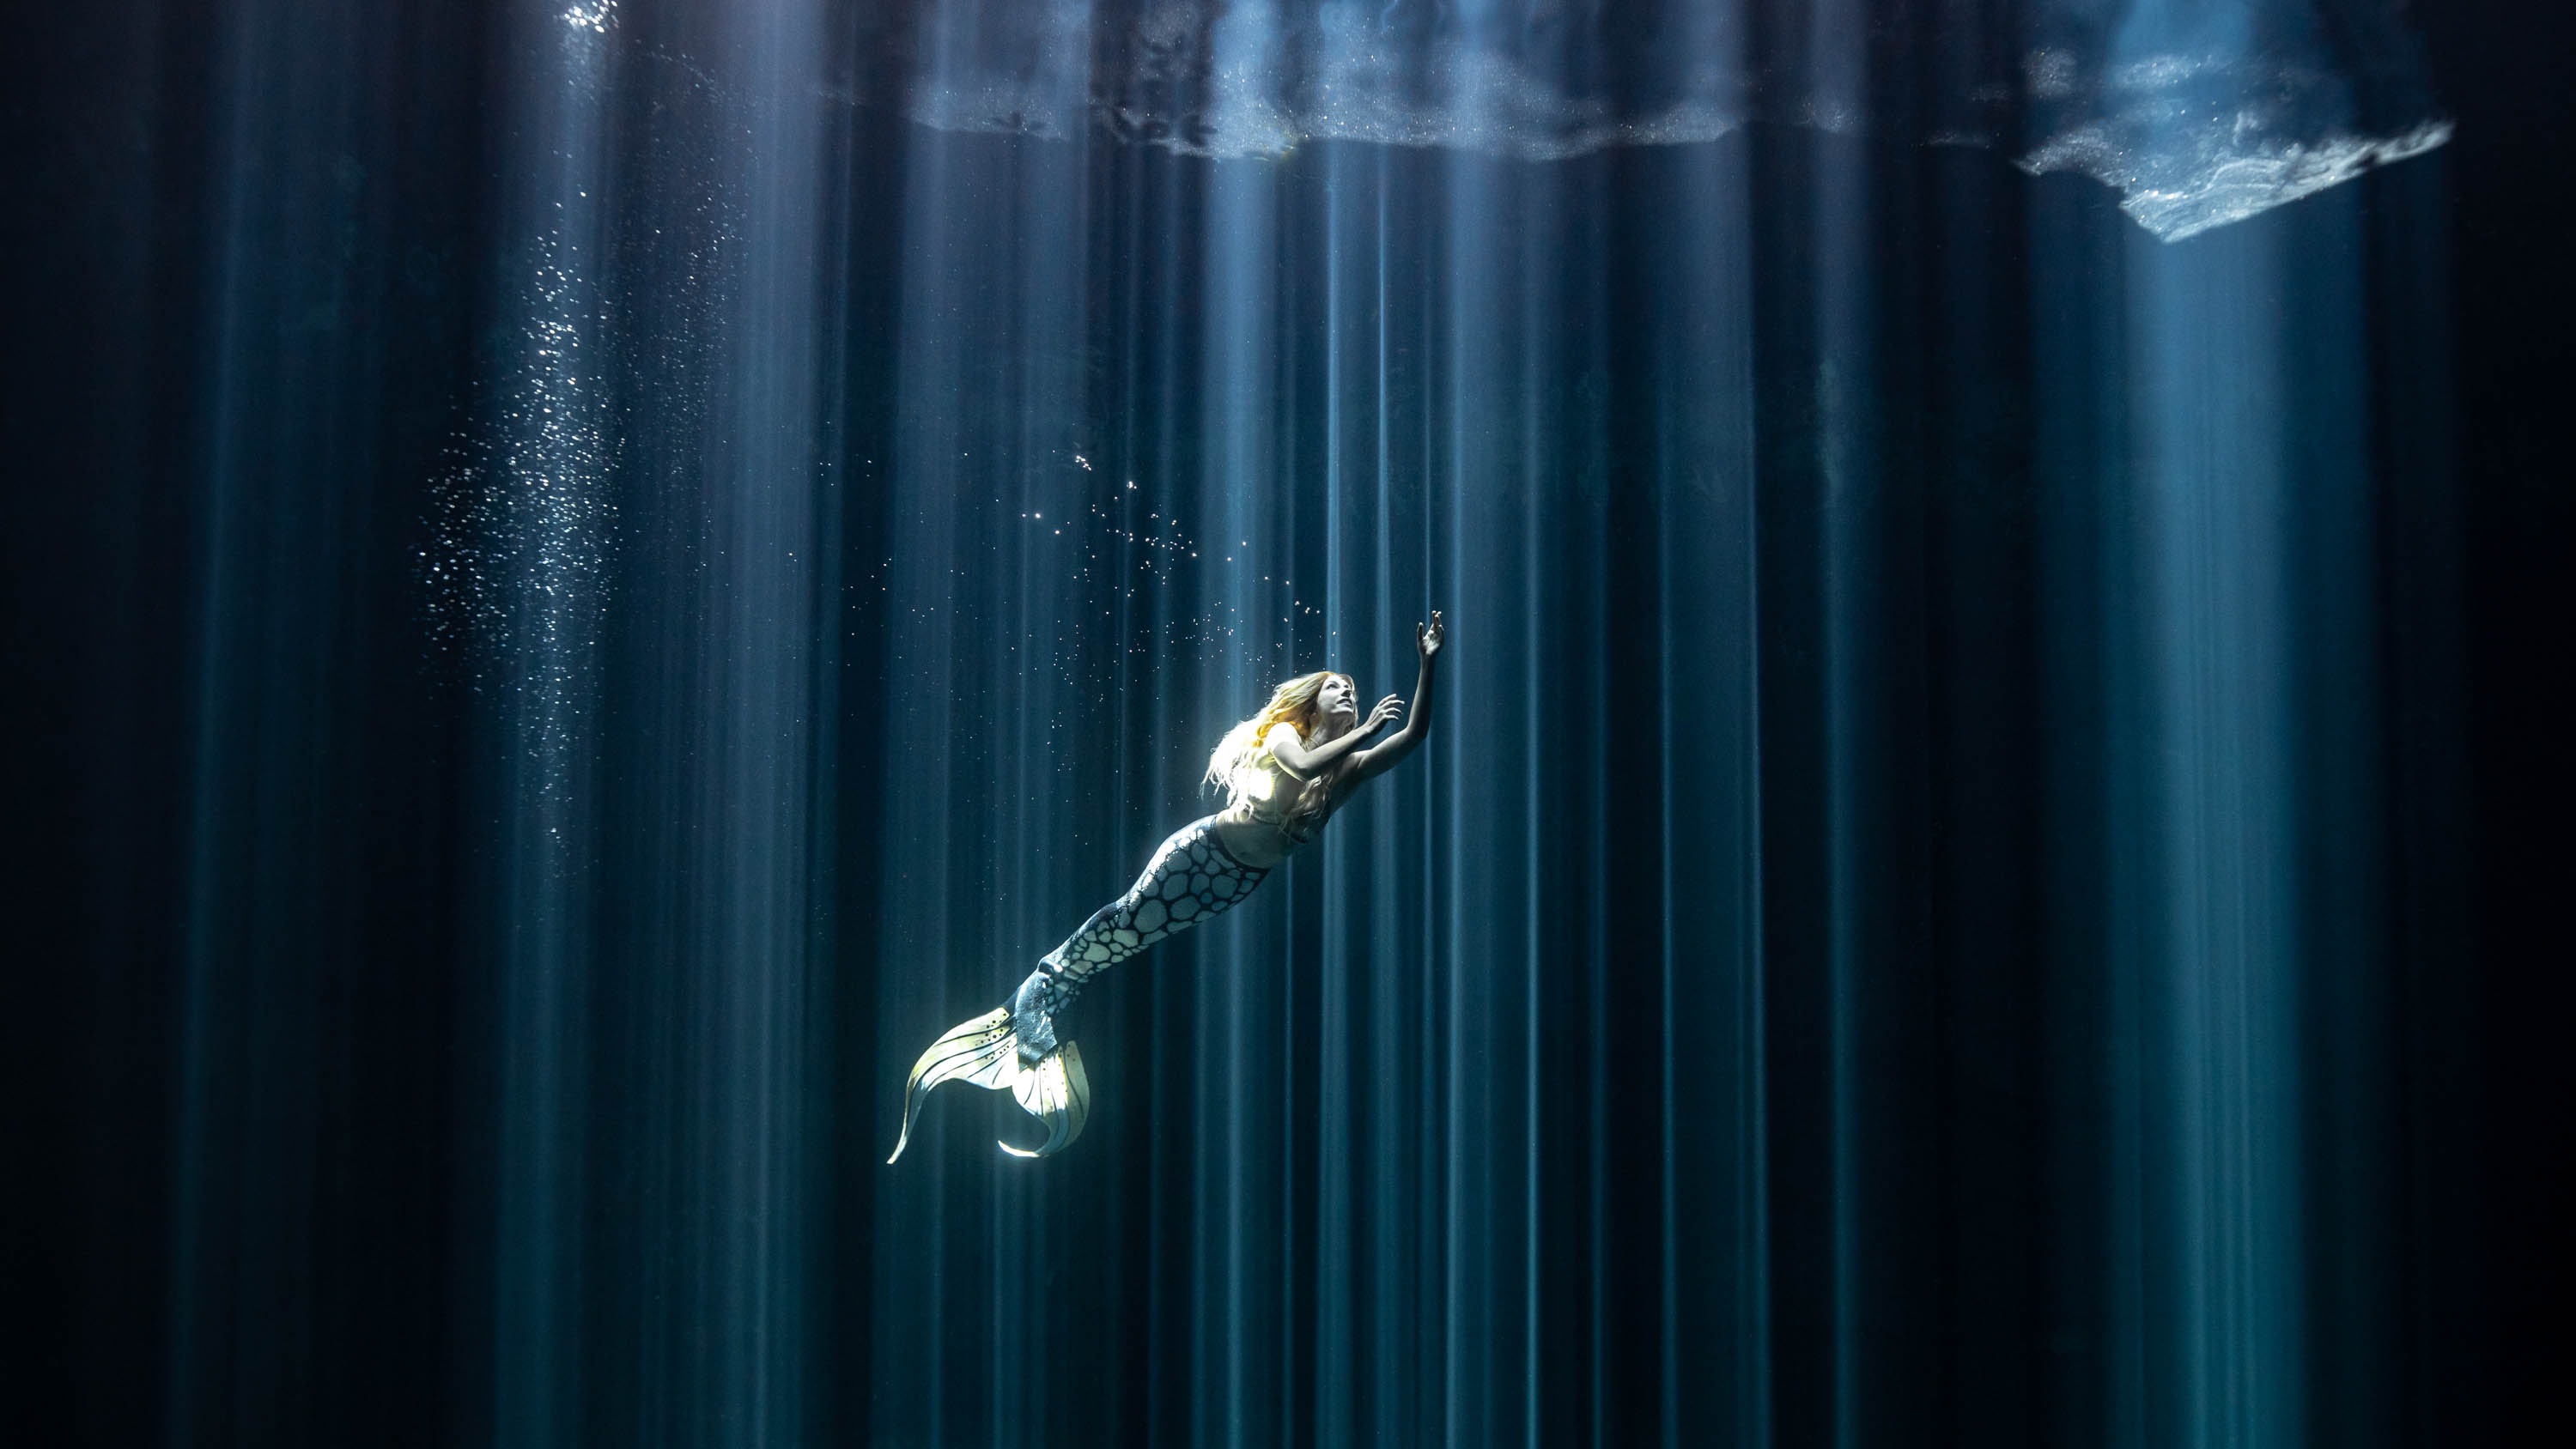 Underwater mermaid shoot in the cenotes of Mexico